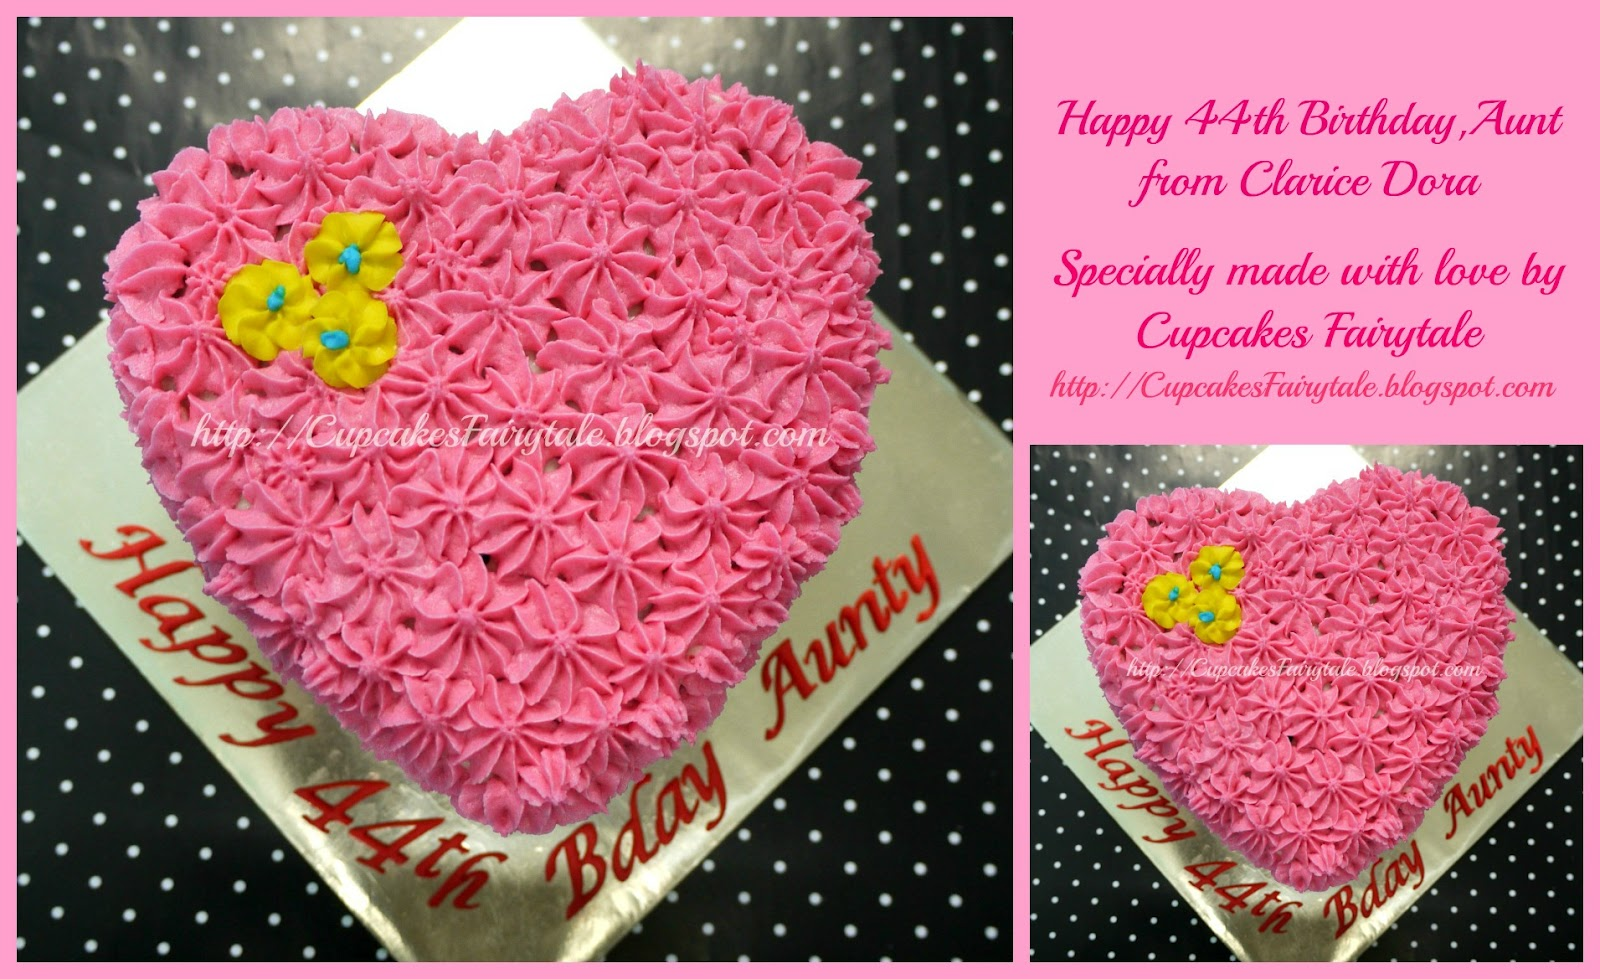 Birthday Cake Images For Aunt : Cupcakes Fairytale: CLARICE DORA S AUNT S BIRTHDAY CAKE